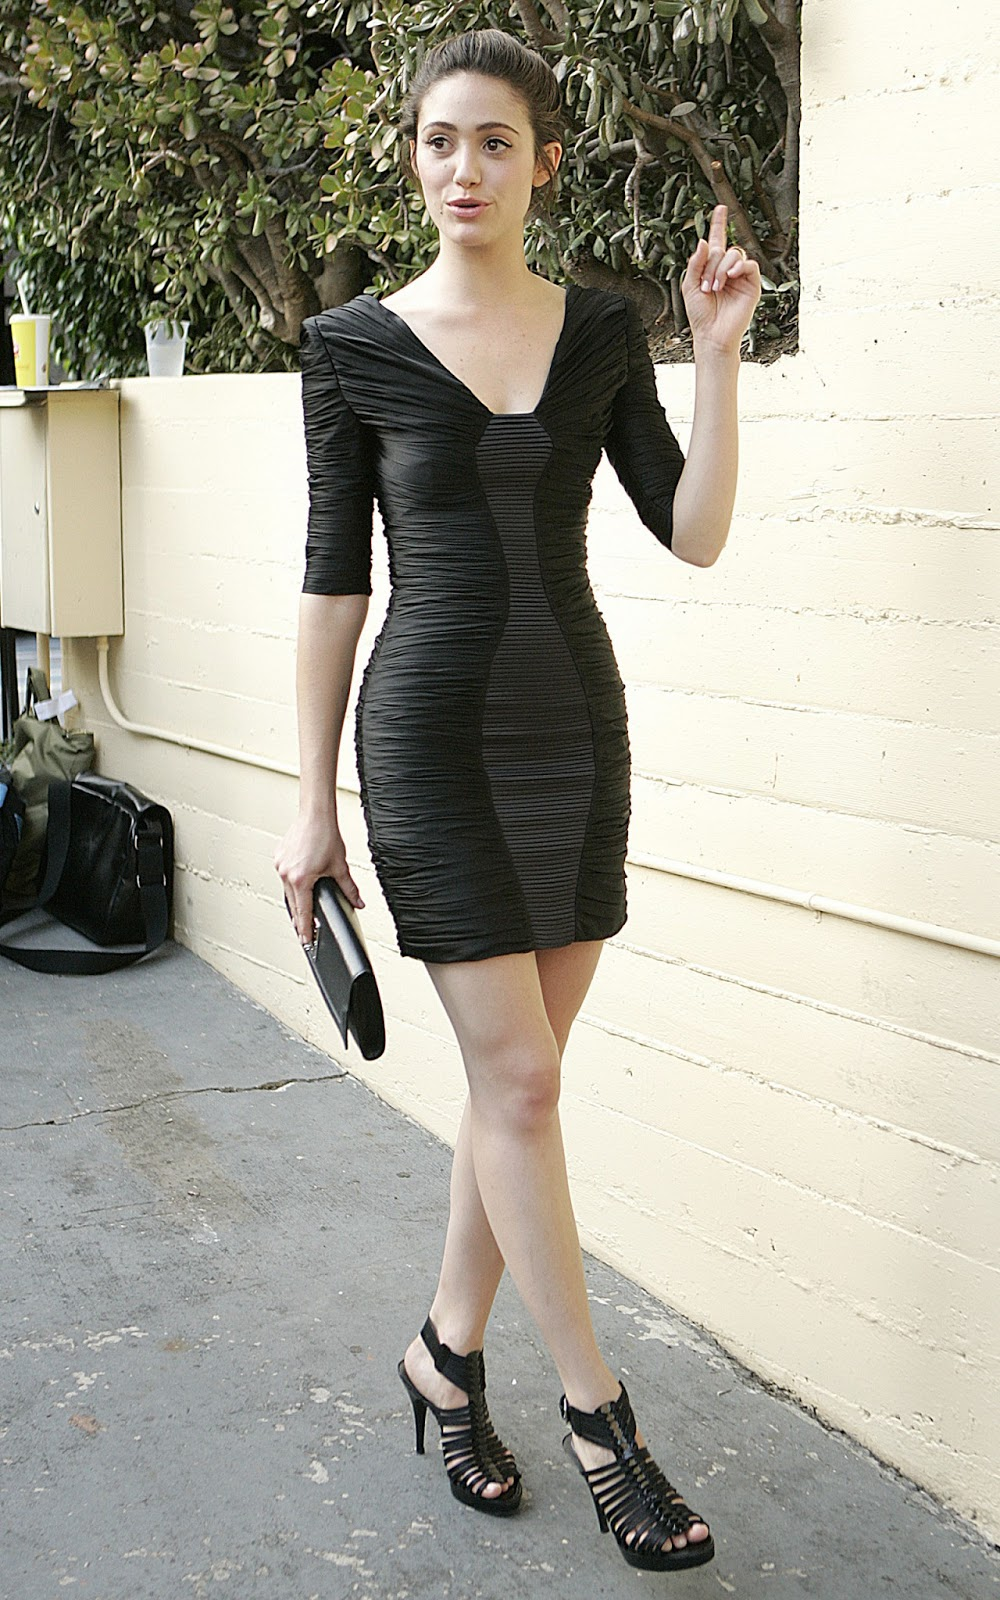 Wikimise: Emmy Rossum wiki and pics Emmy Rossum Moves